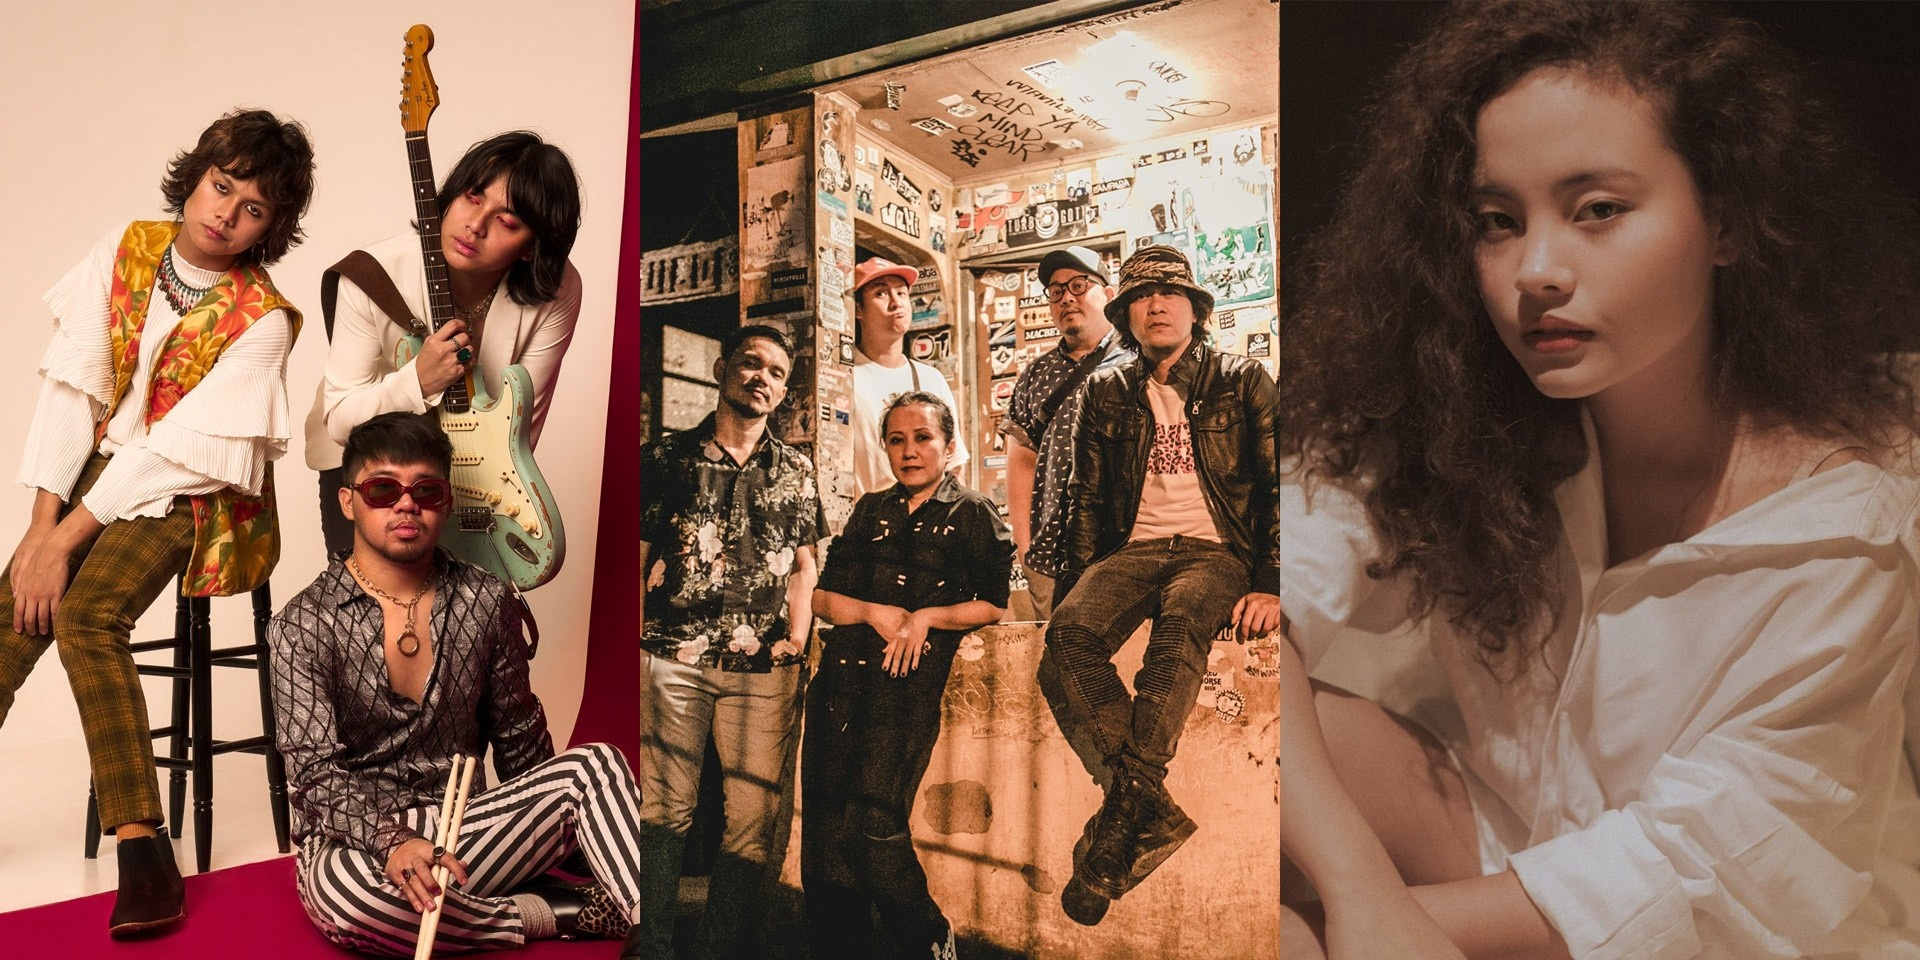 IV Of Spades, Sandwich, Shanne Dandan, and more release new music – listen